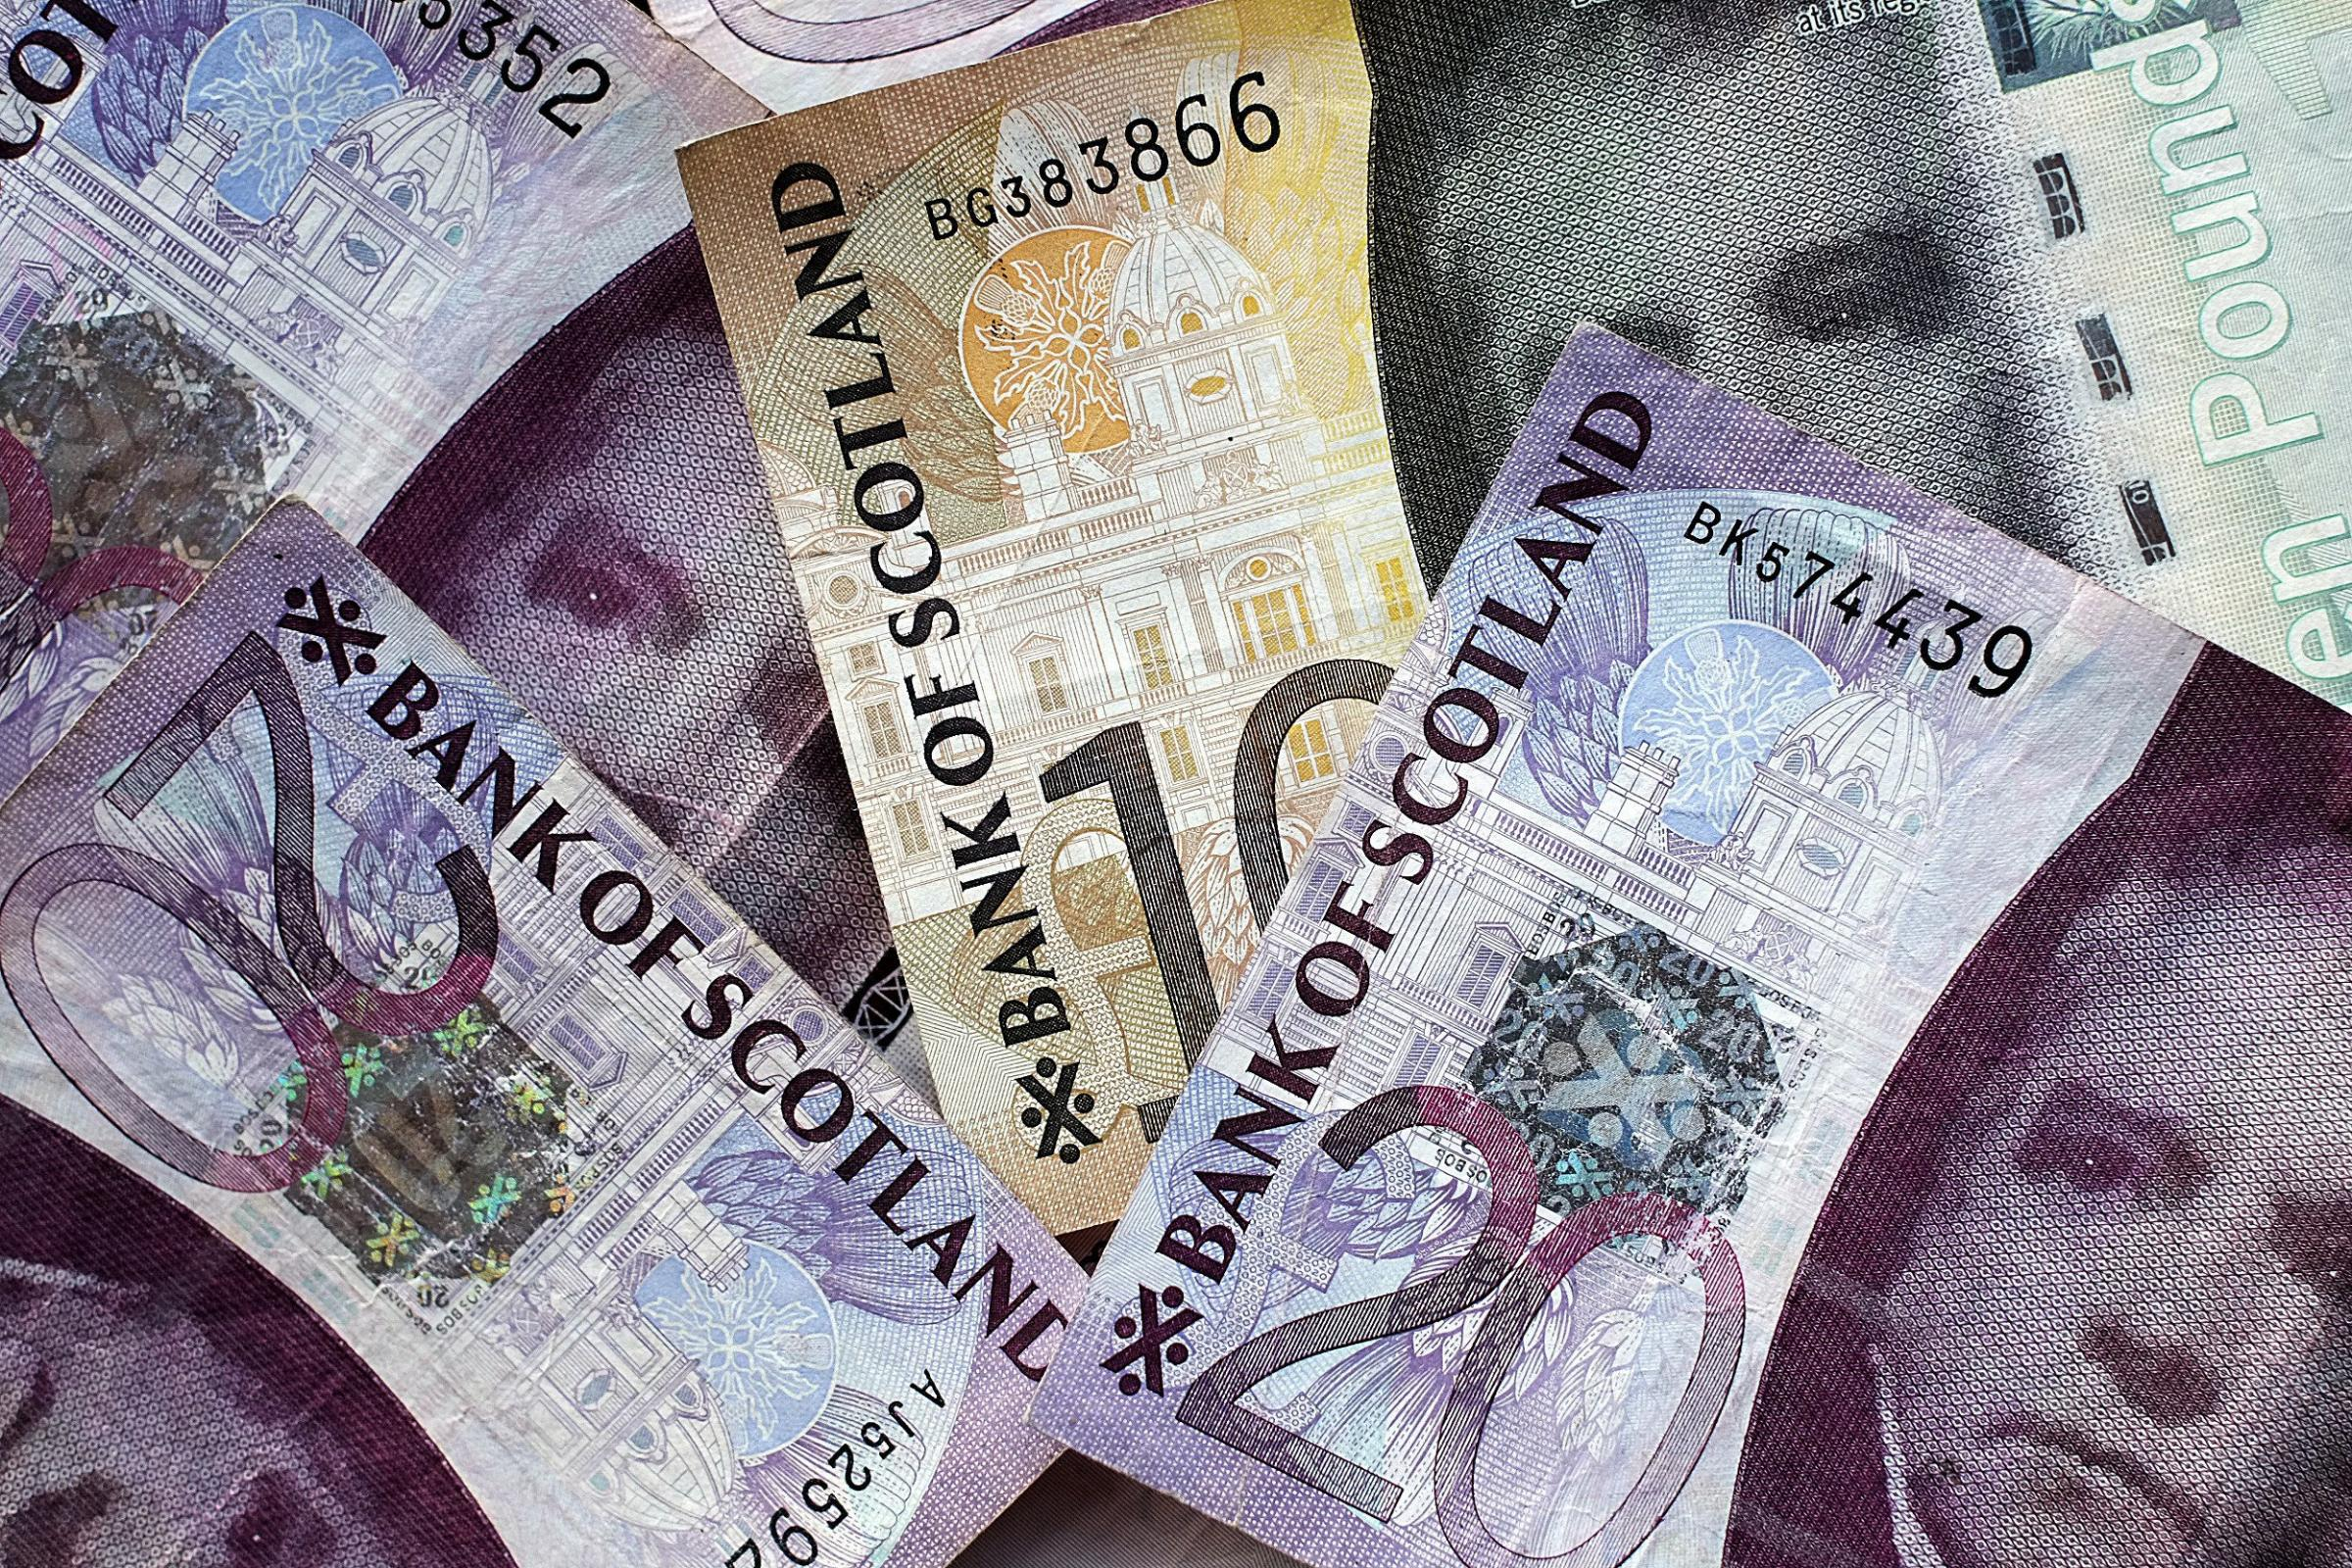 Have you had Scottish banknotes refused?